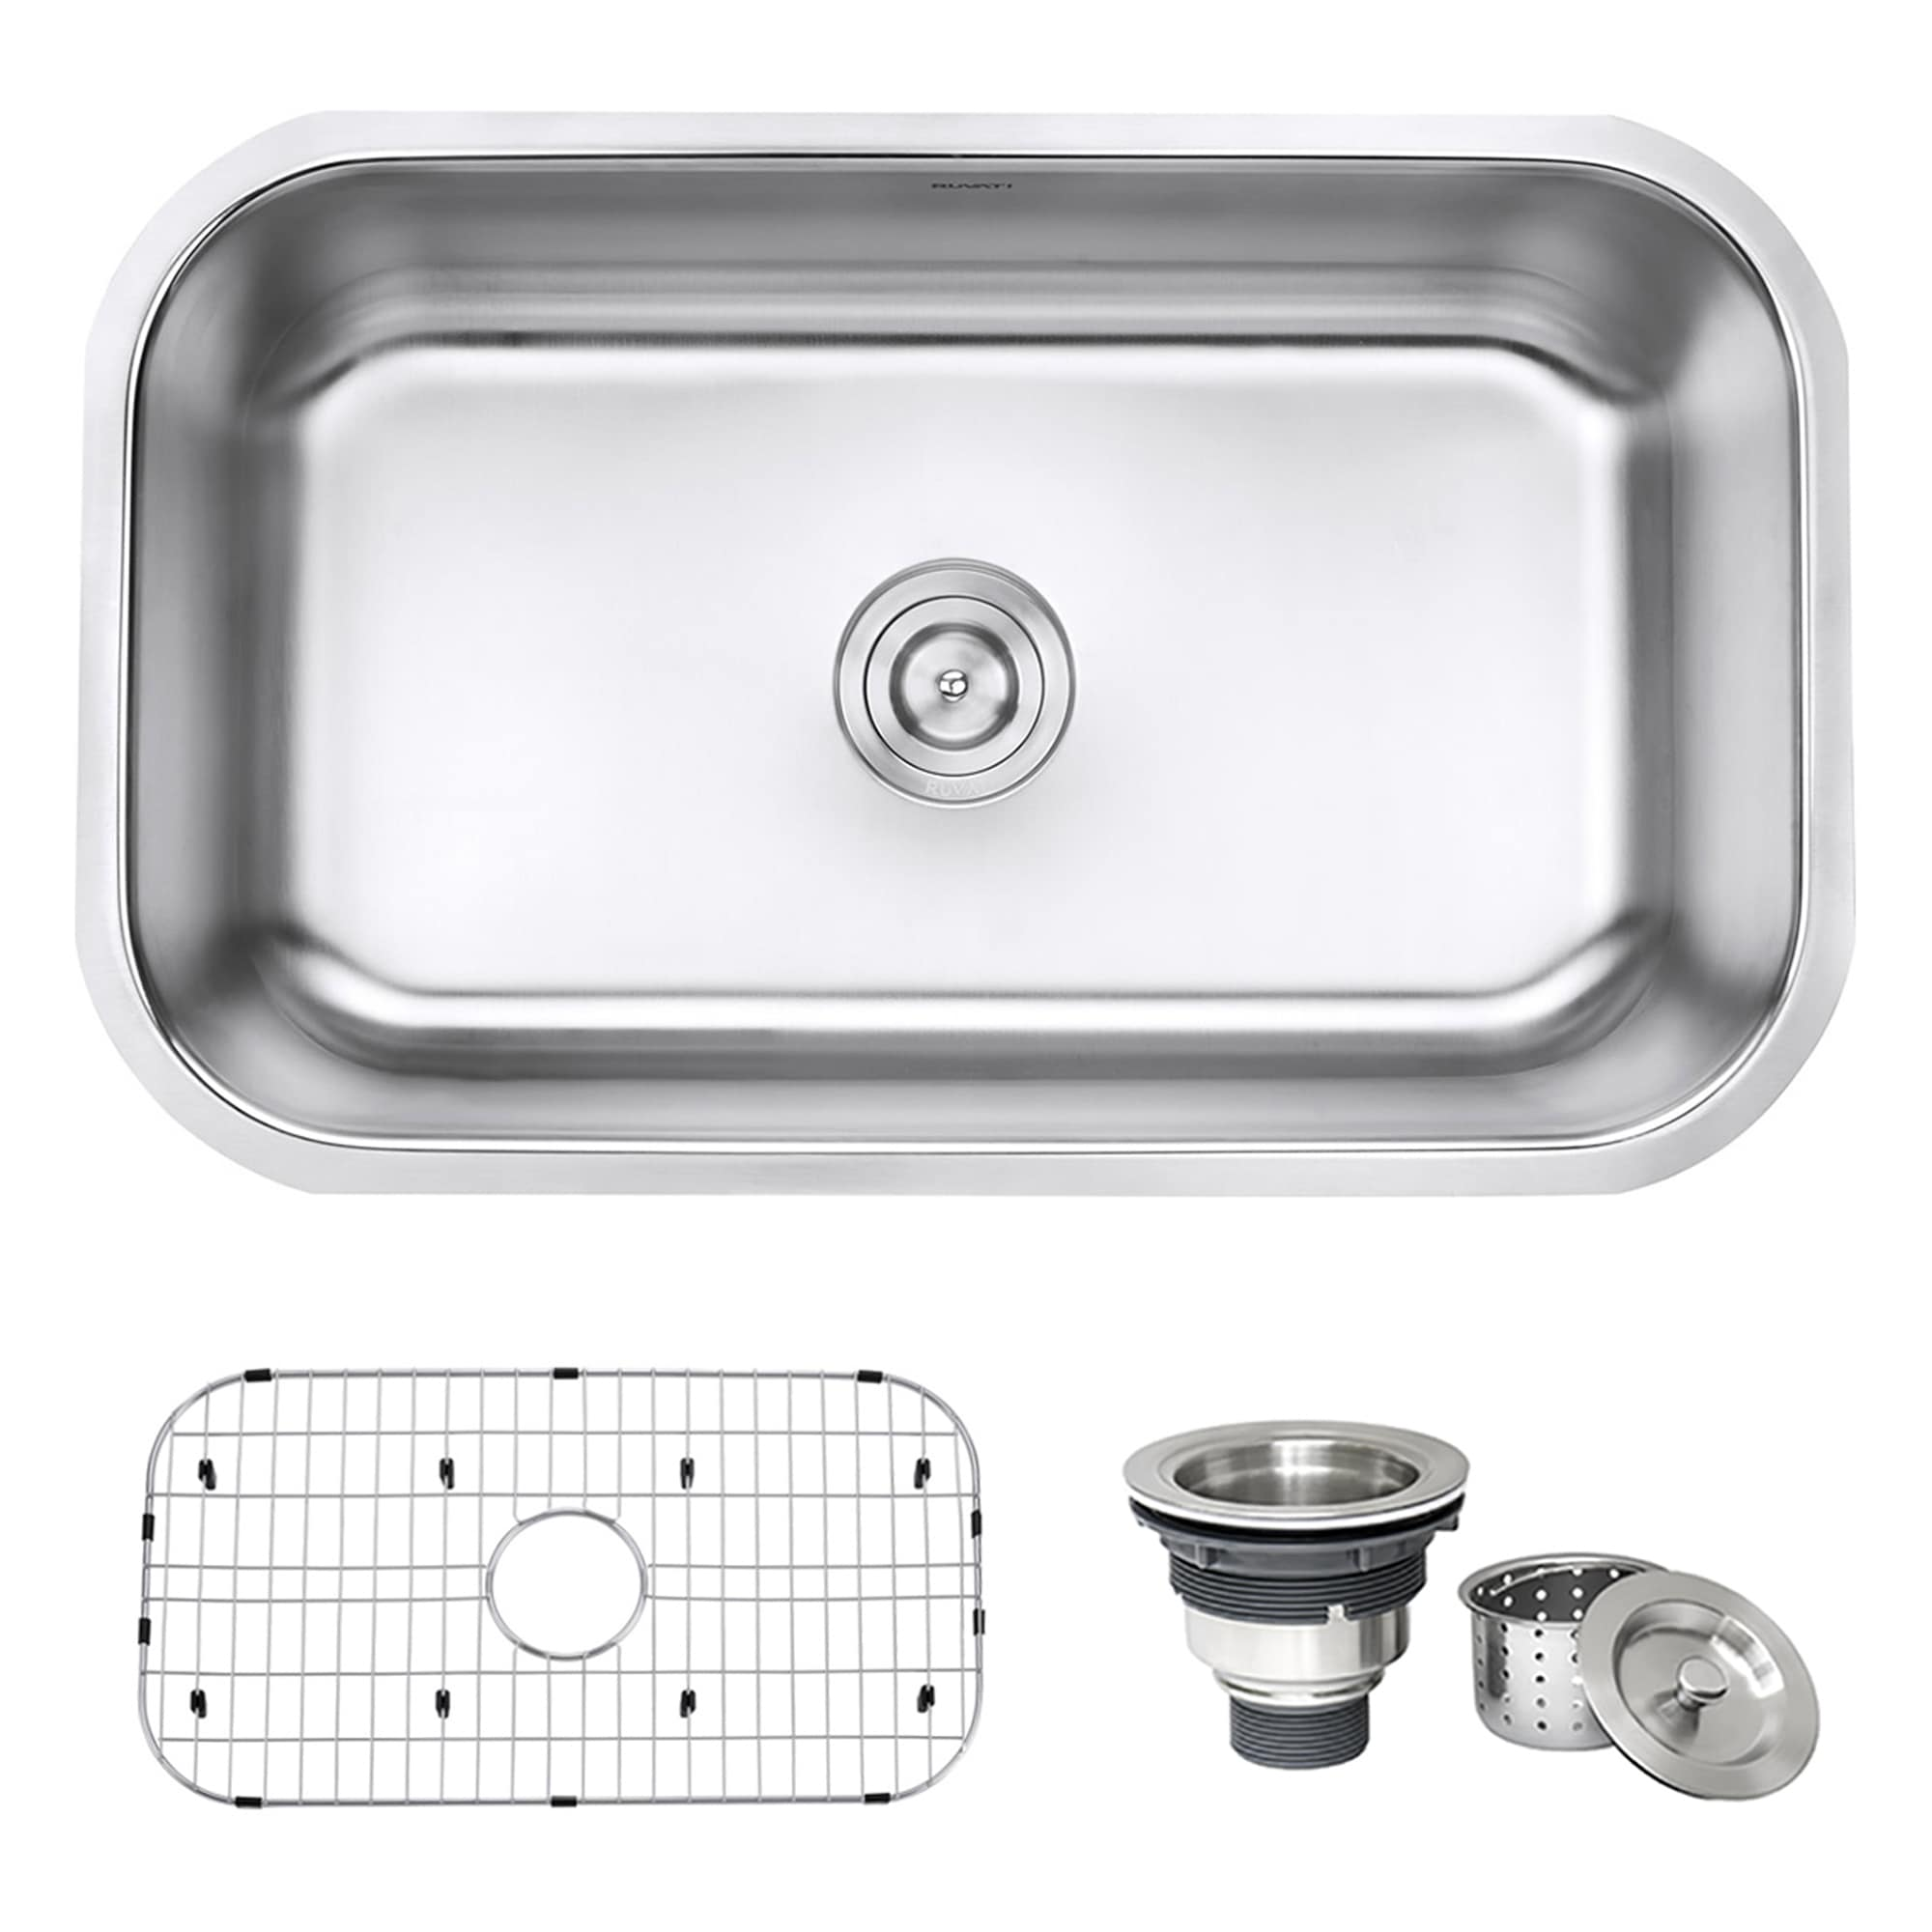 30 in undermount sink